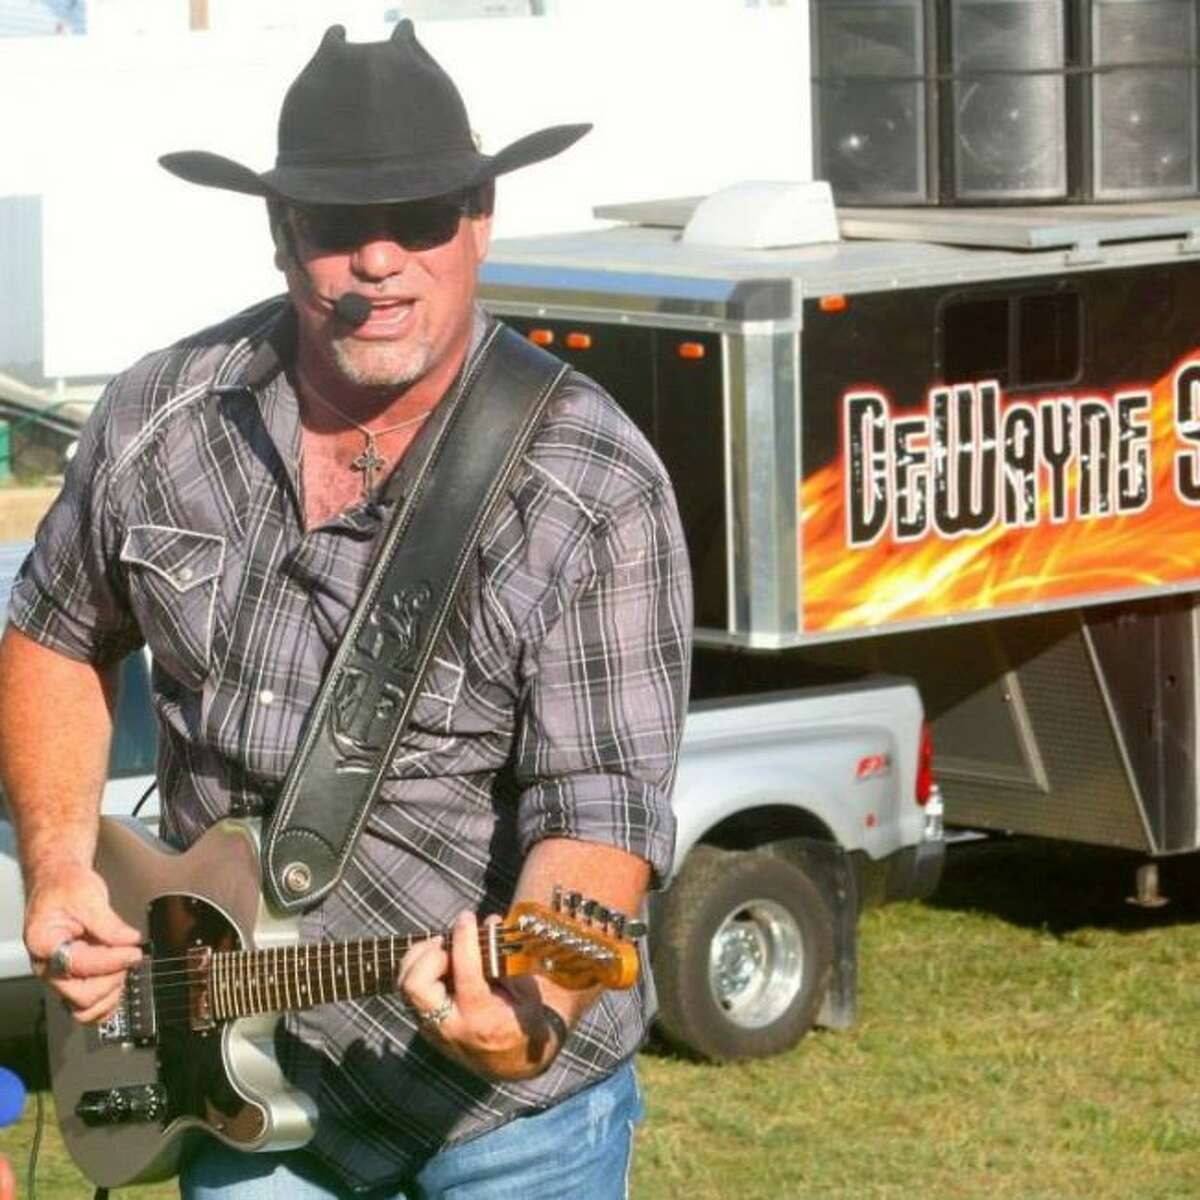 Country music entertainer DeWayne Spaw will be the emcee during the Manistee News Advocate's Battle of the Bands on Saturday at the Little River Casino Resort in Manistee. (Courtesy photo)